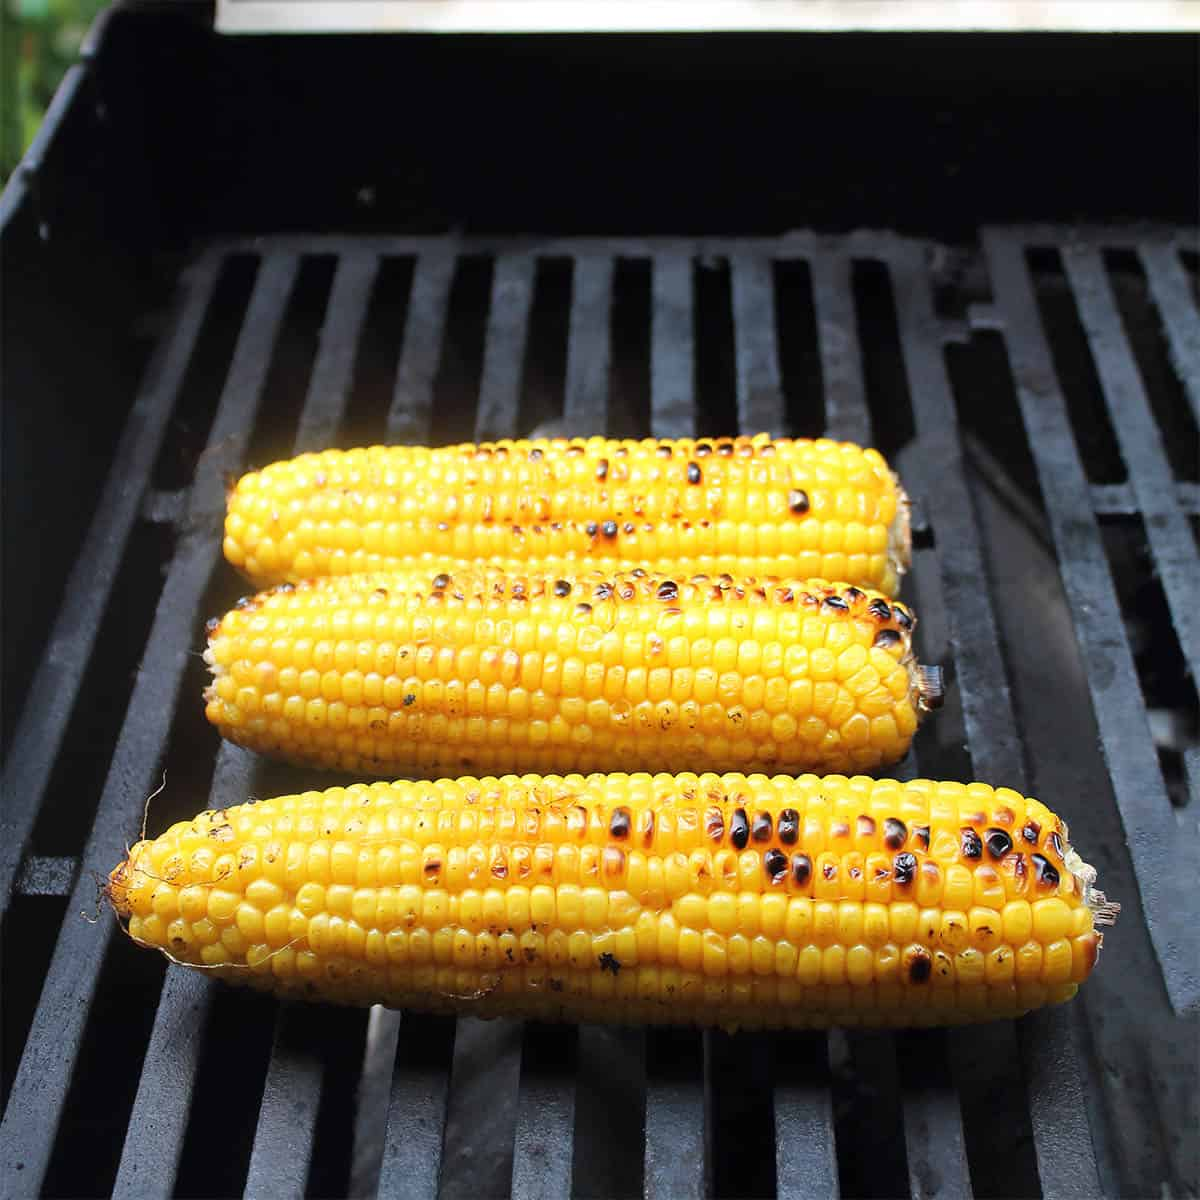 Corn on the cob on grill.